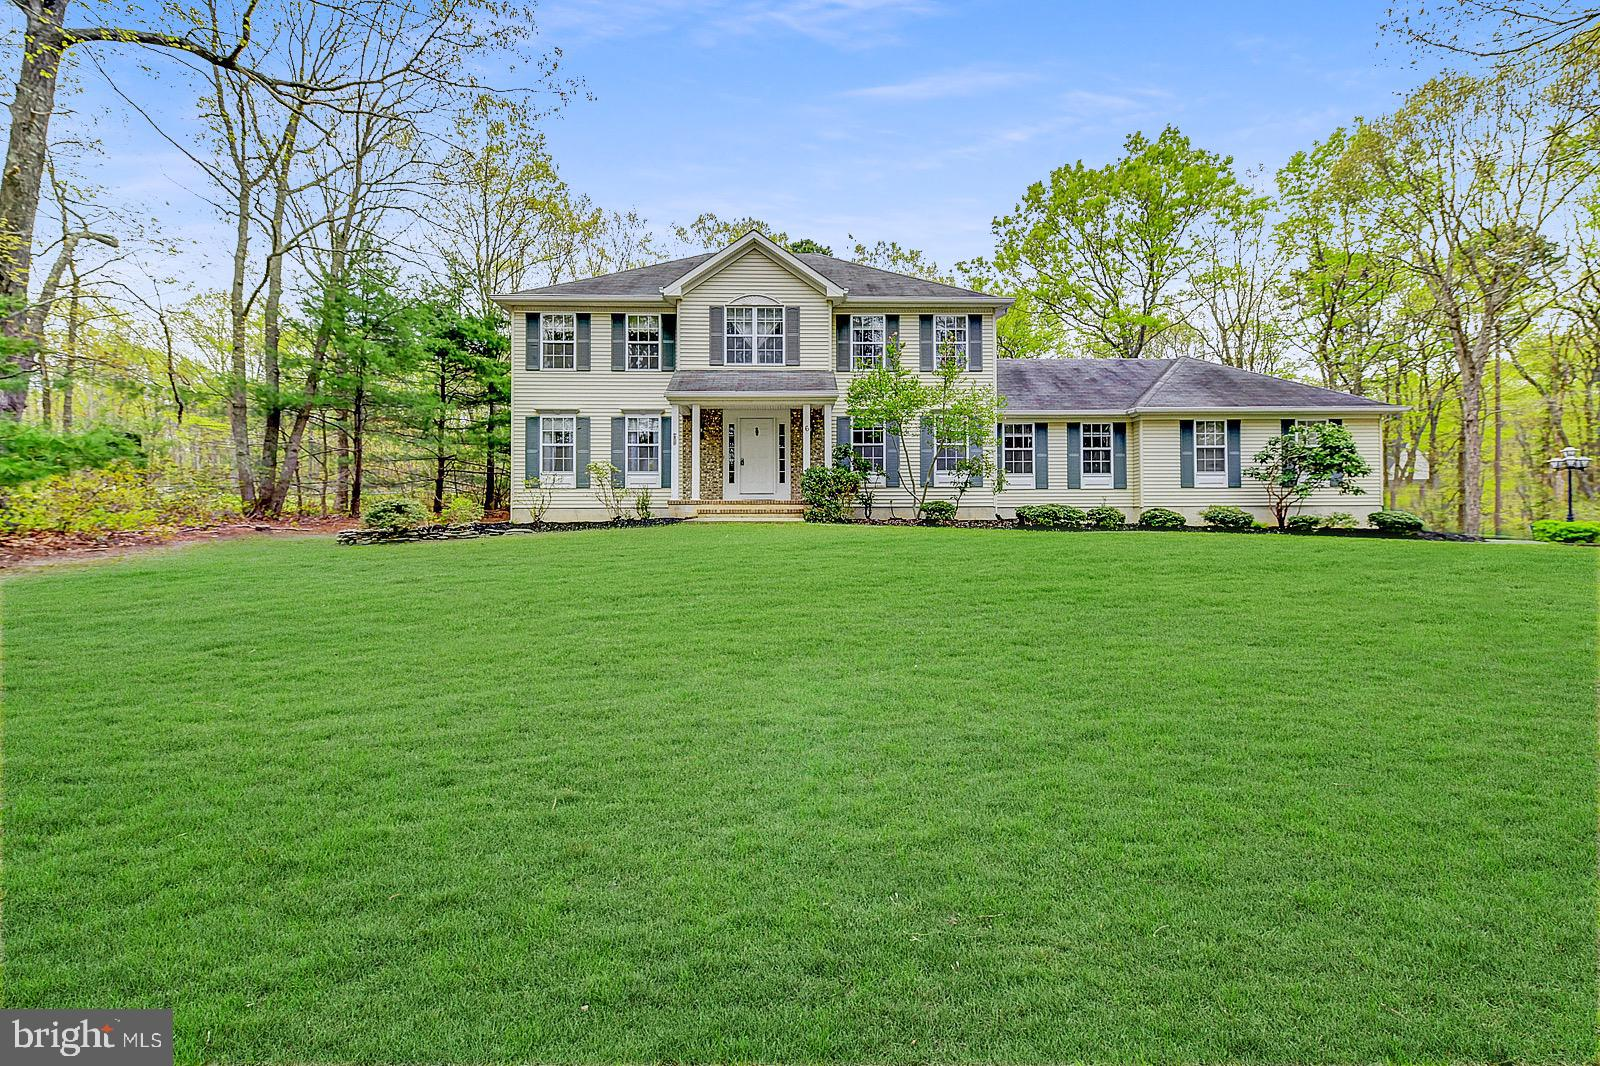 6 FOREST HILL DRIVE, NEW EGYPT, NJ 08533